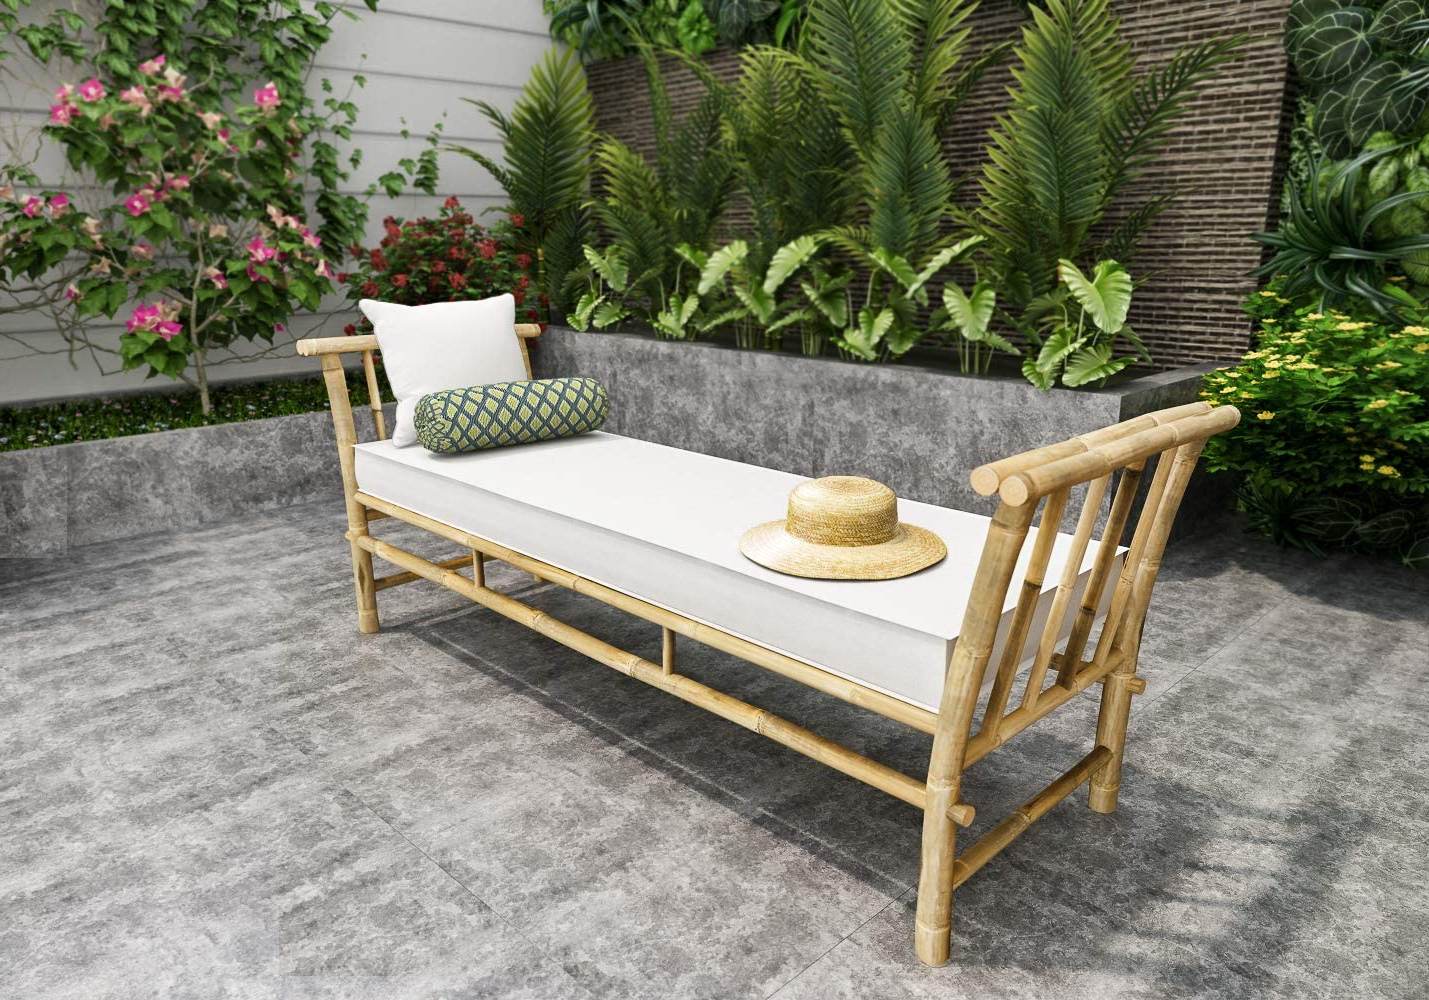 Newest Brecken Teak Garden Benches Throughout Zew Bamboo Daybed Lounger Bench Sofa Chair Loveseat For Outdoor Indoor Patio Garden With Mattress, Blue White Stripe (View 22 of 30)